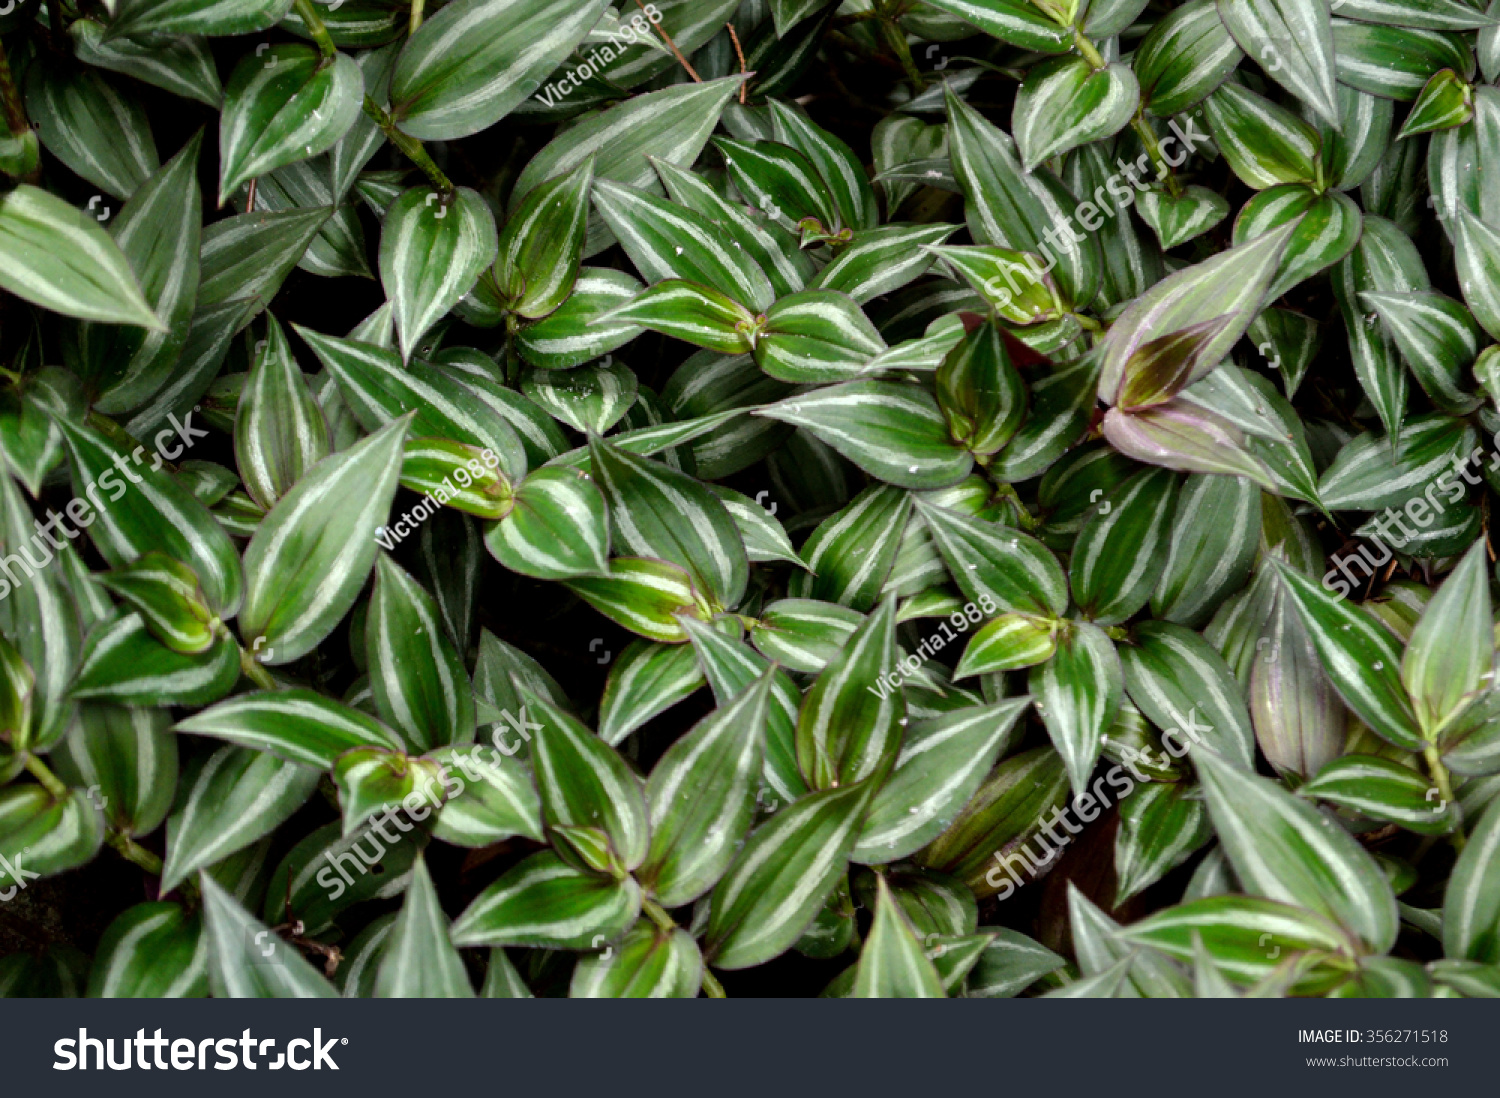 Lush foliage wandering jew plant scientific stock photo 356271518 shutterstock - Wandering jew plant name ...